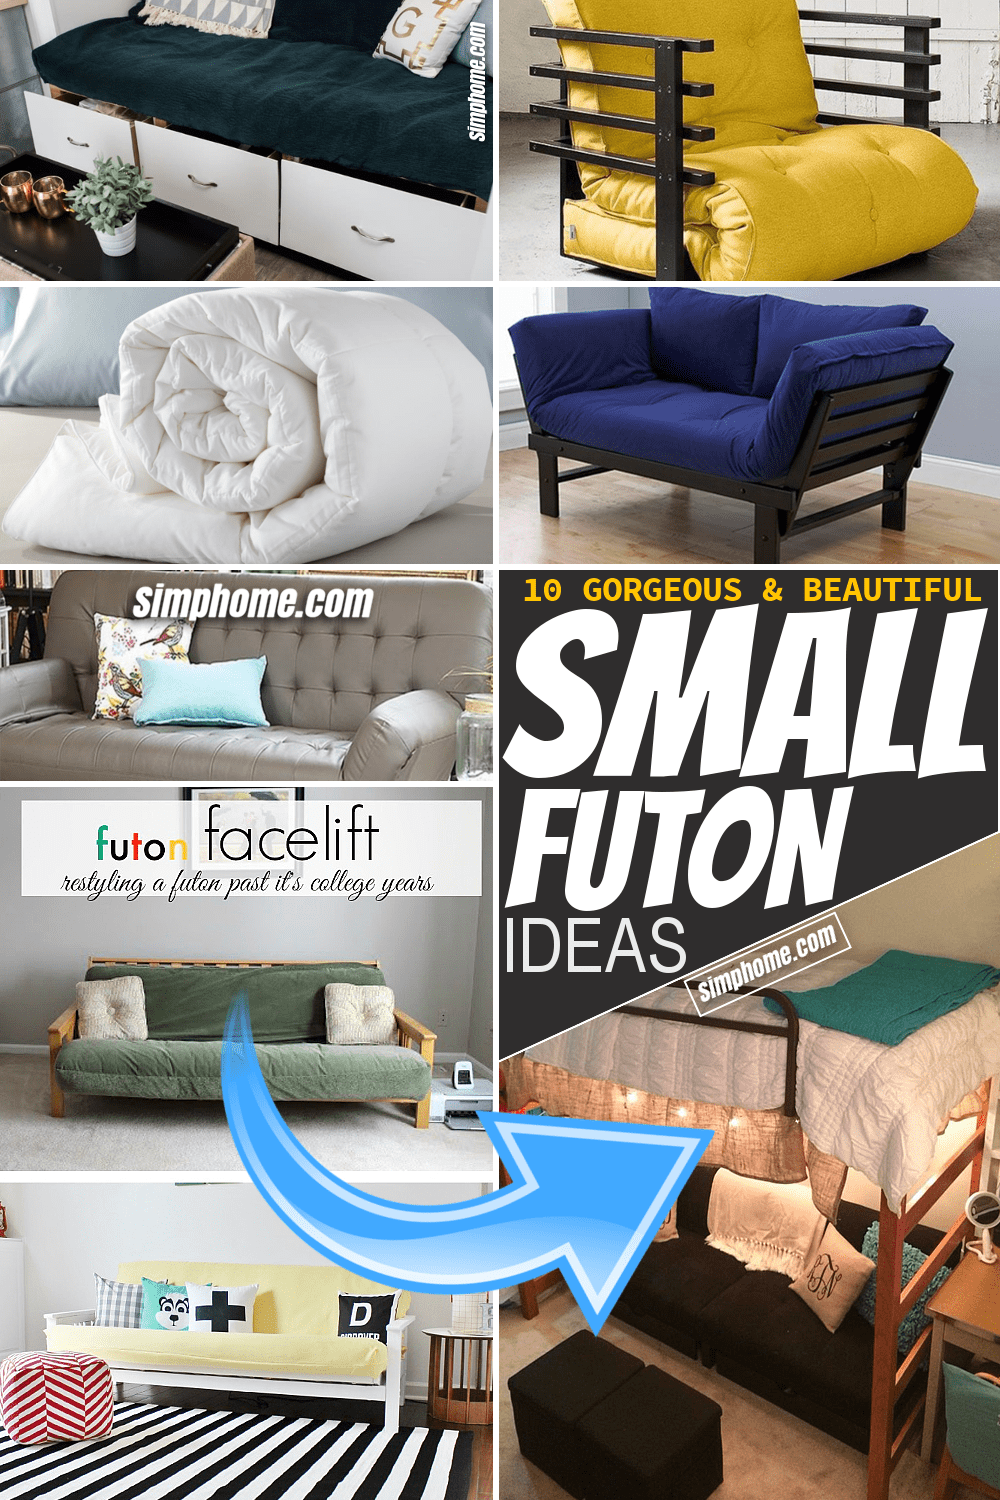 Simphome.com 10 Gorgeous Small Futon Ideas for Small Space or Bedroom Featured Pinterest Image